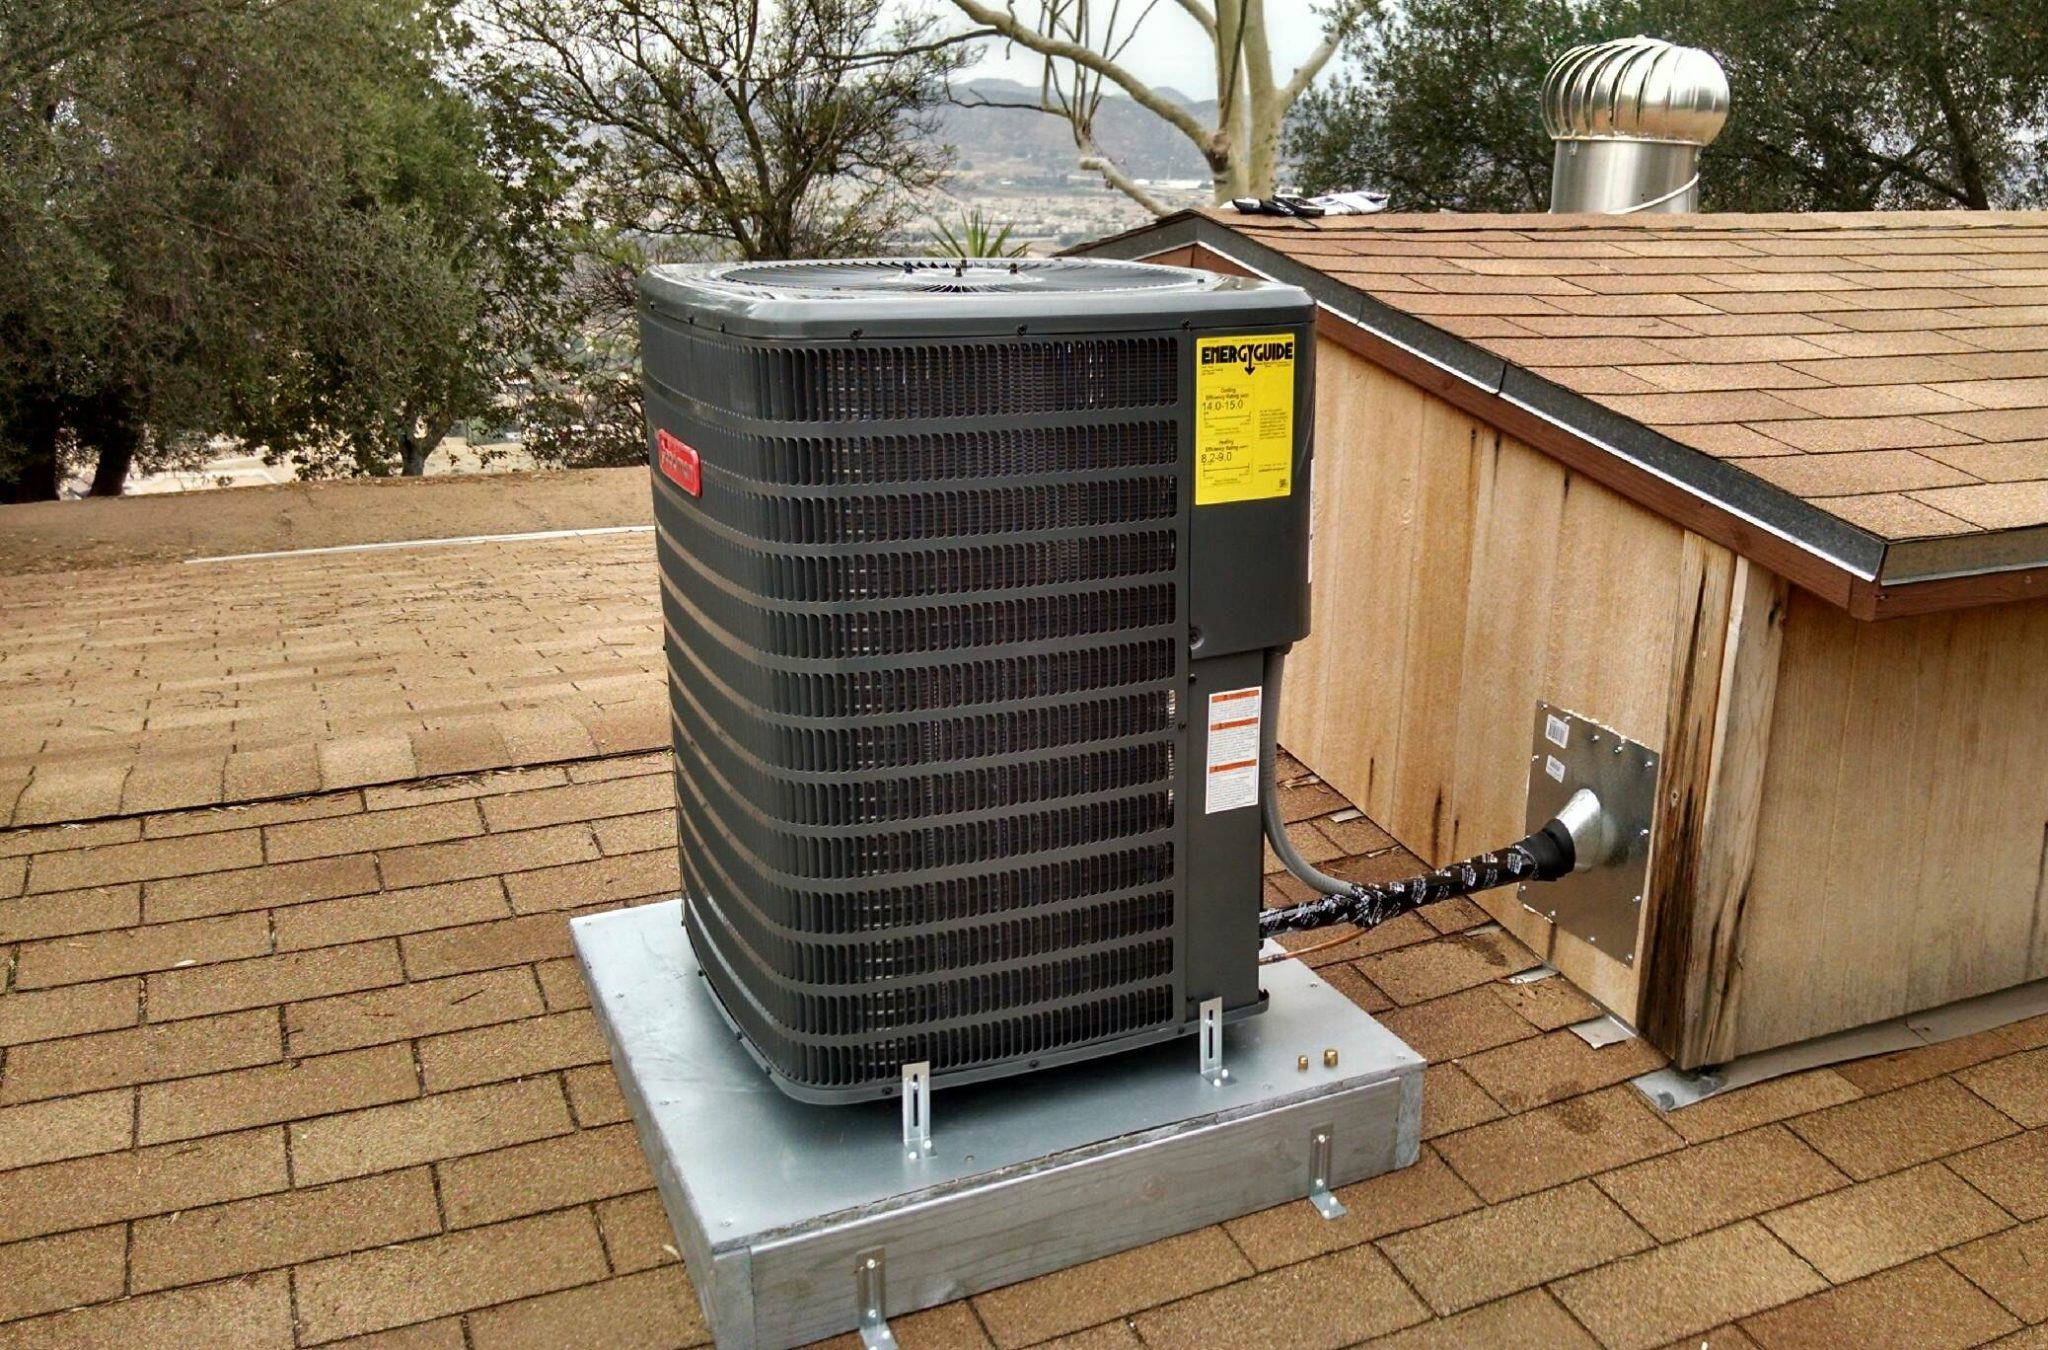 19 Ac Condenser Installed On A Roof Optimal Air Heating